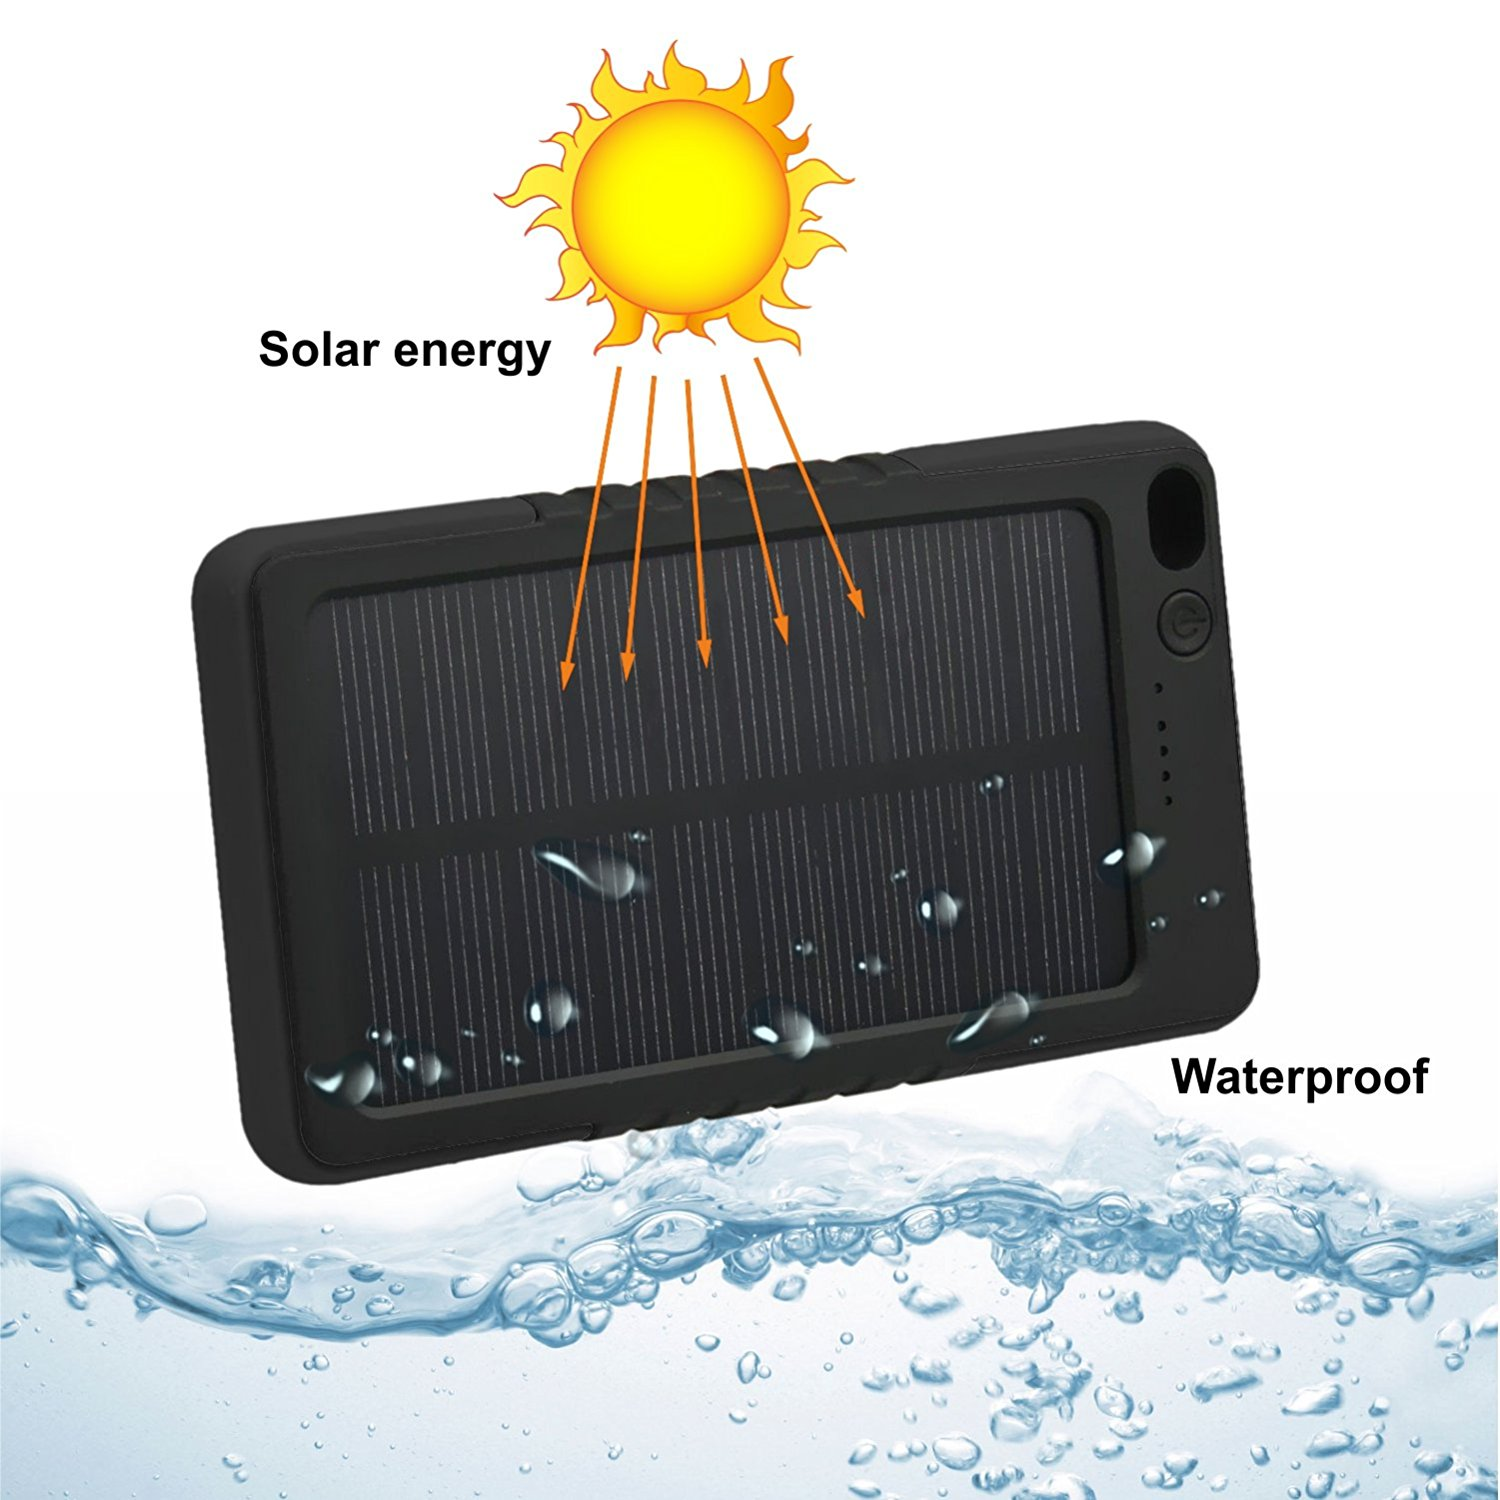 Solar Portable Charger Waterproof 8000mah LED External Battery Charger Power Bank For Cell Phone, iPhone, Samsung, Android phones, Windows phones, GoPro Camera, GPS, (Black)